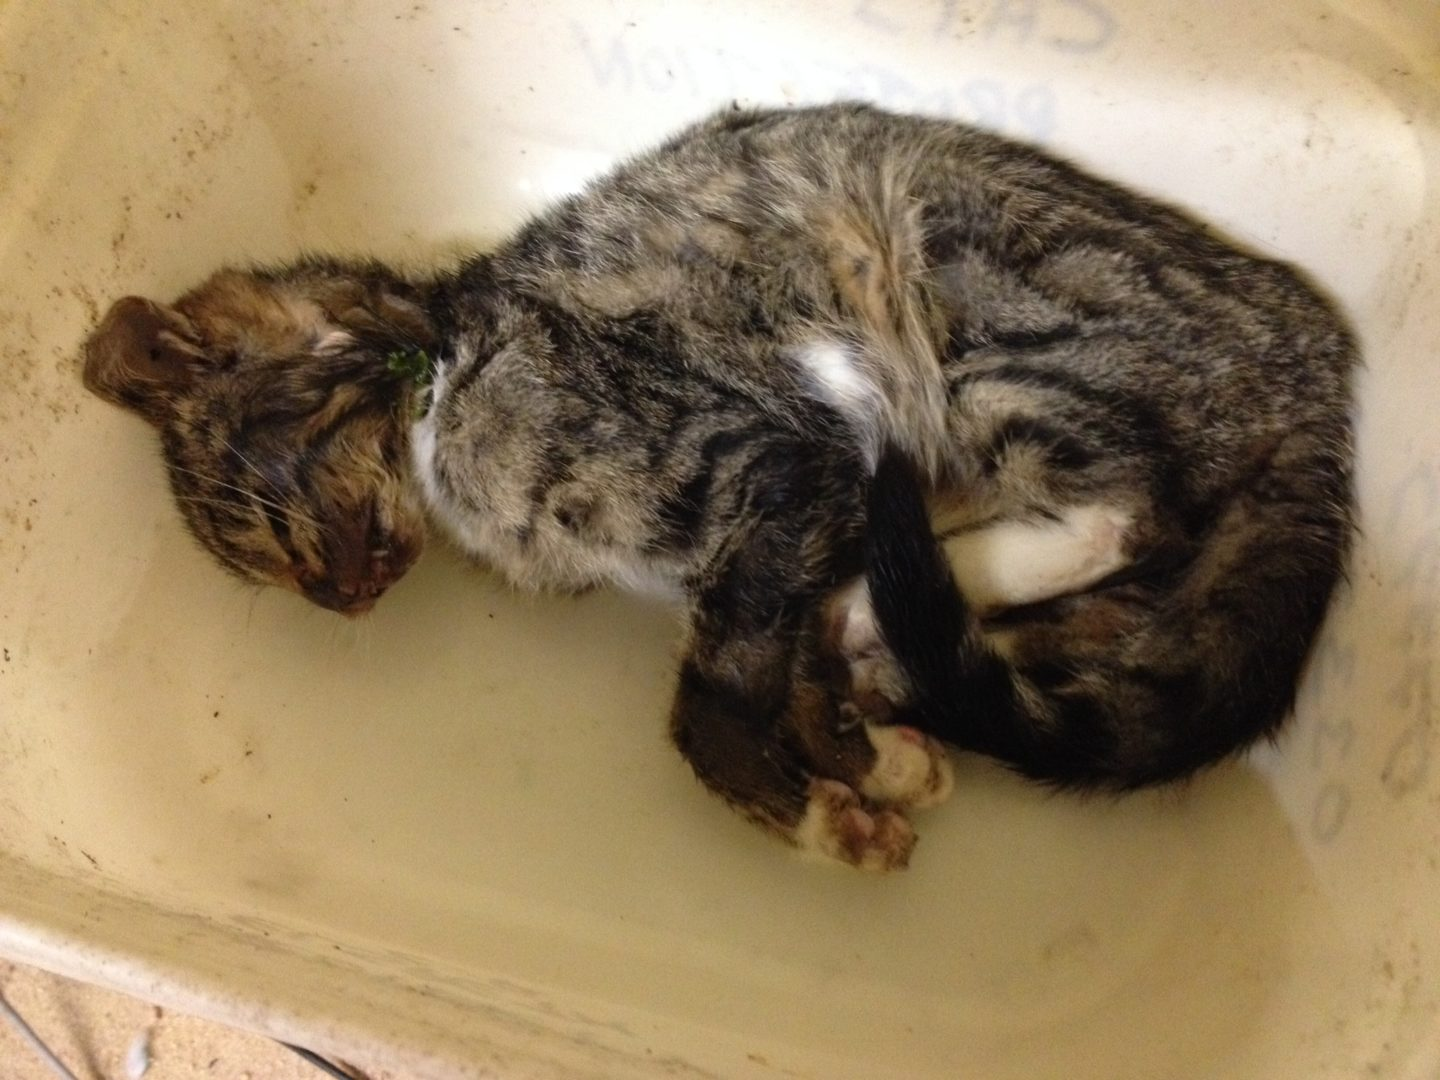 Kitten-road-traffic-victim-crawled-to-feed-basin-to-die-photo-thanks-to-Elspeth-Stirling